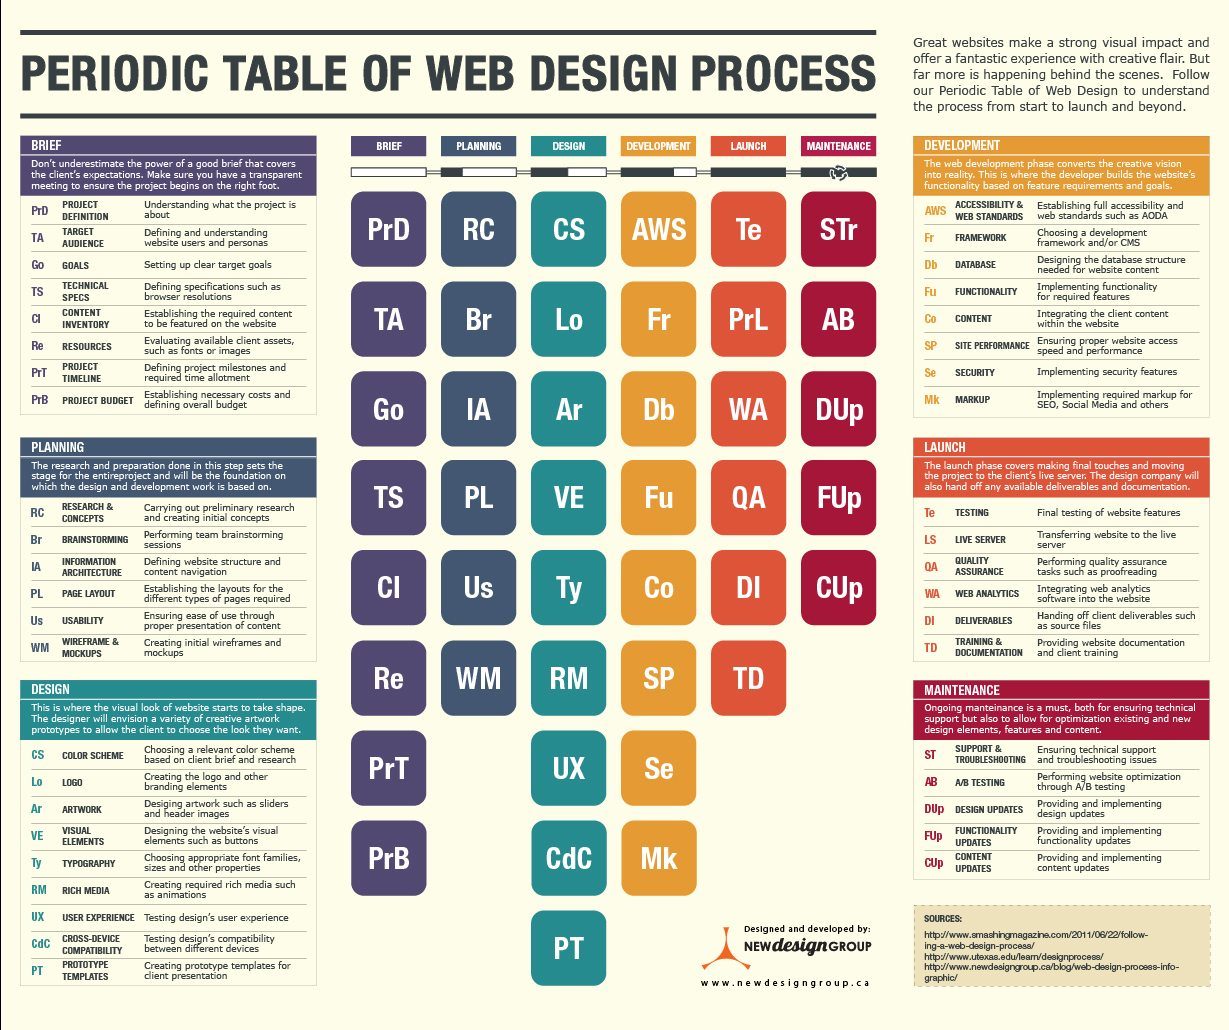 6 Key steps for creating a successful business website design solution